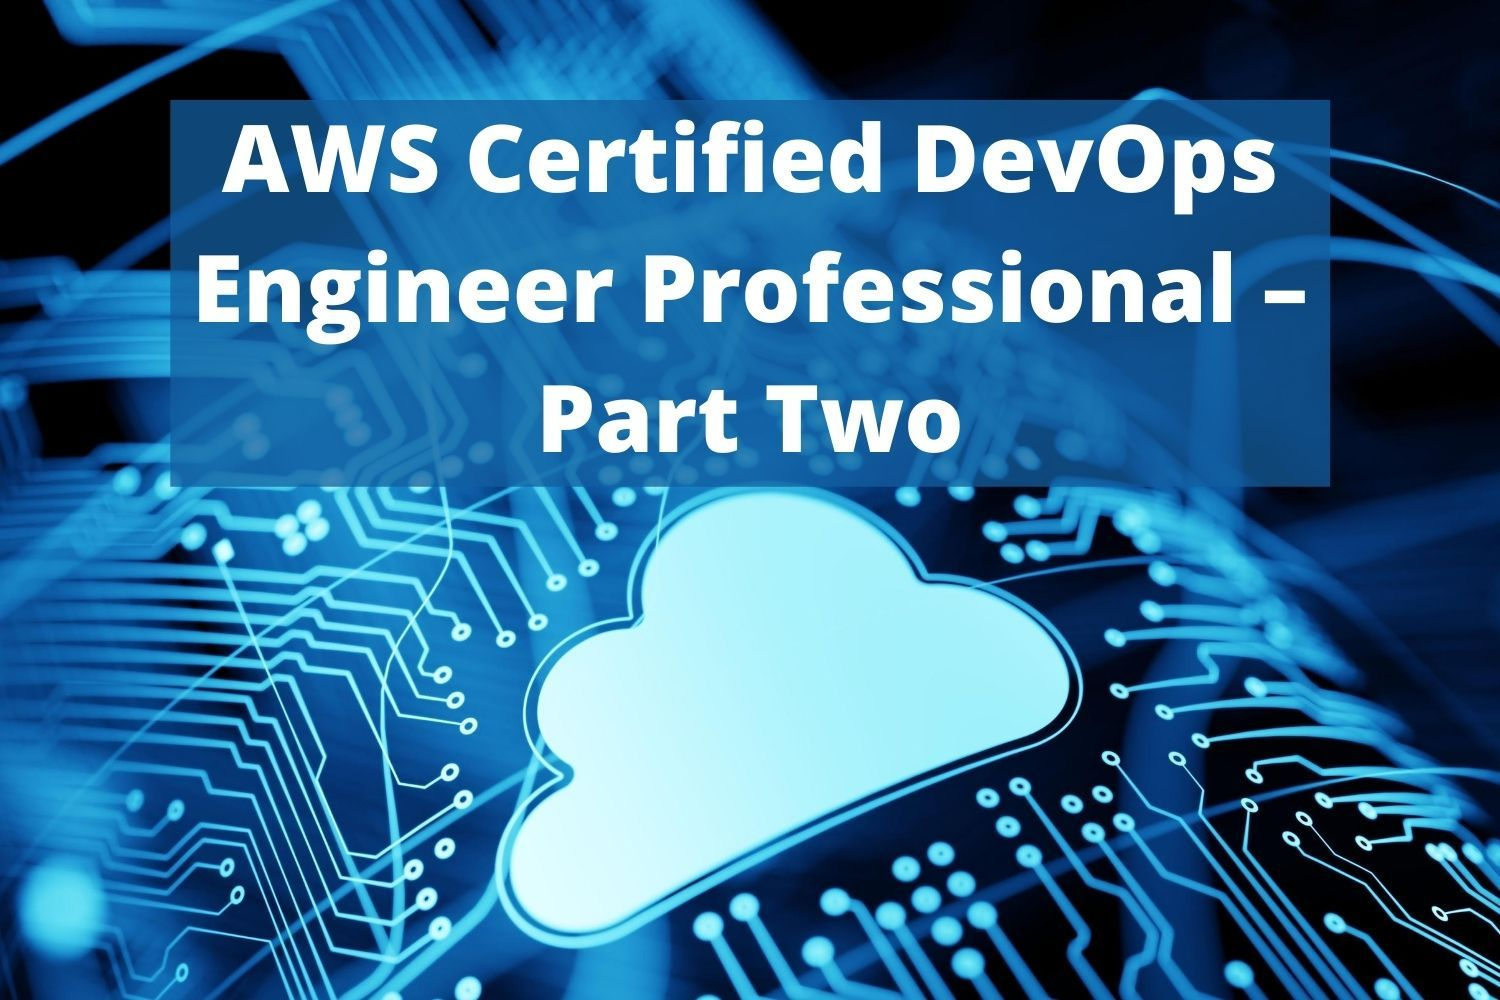 This is the second in a series of four courses that will prepare you for the Amazon Web Services Certified Development and Operations Engineer Certification